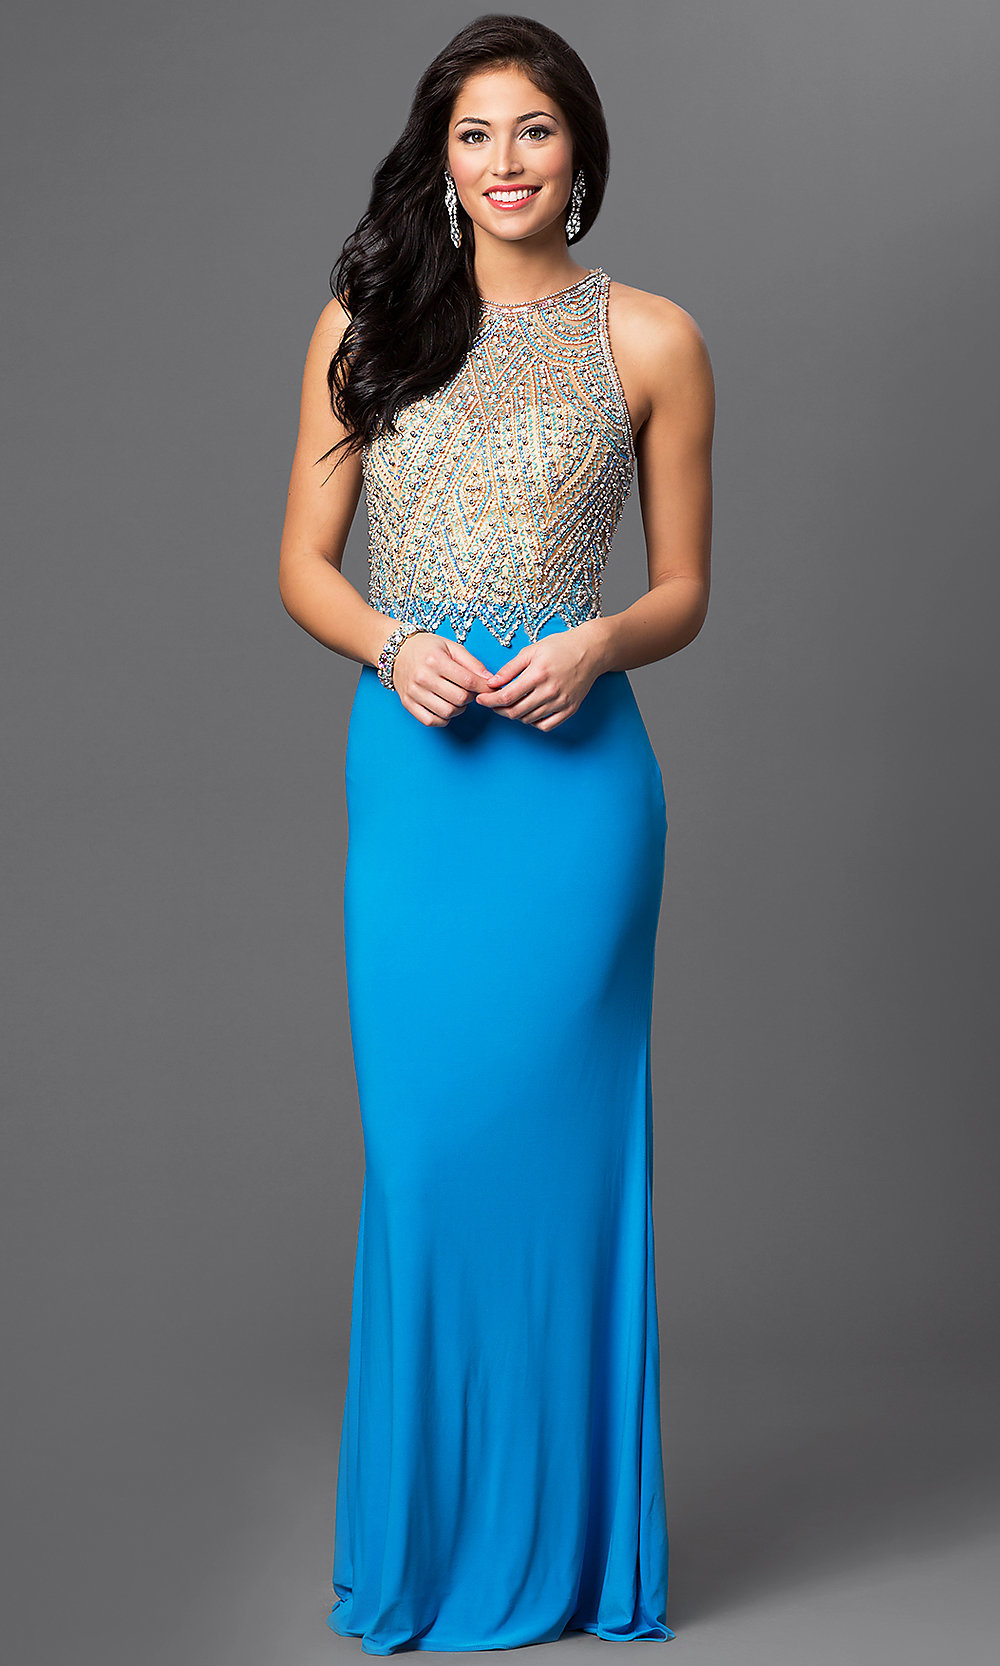 Prom dresses Are you looking for the most unique and fabulous prom dress ideas? Then you have landed the perfect place as we have brought you some extraordinary dresses by the label Clarisse that are sure to turn heads with their elegance and intricate detailing.